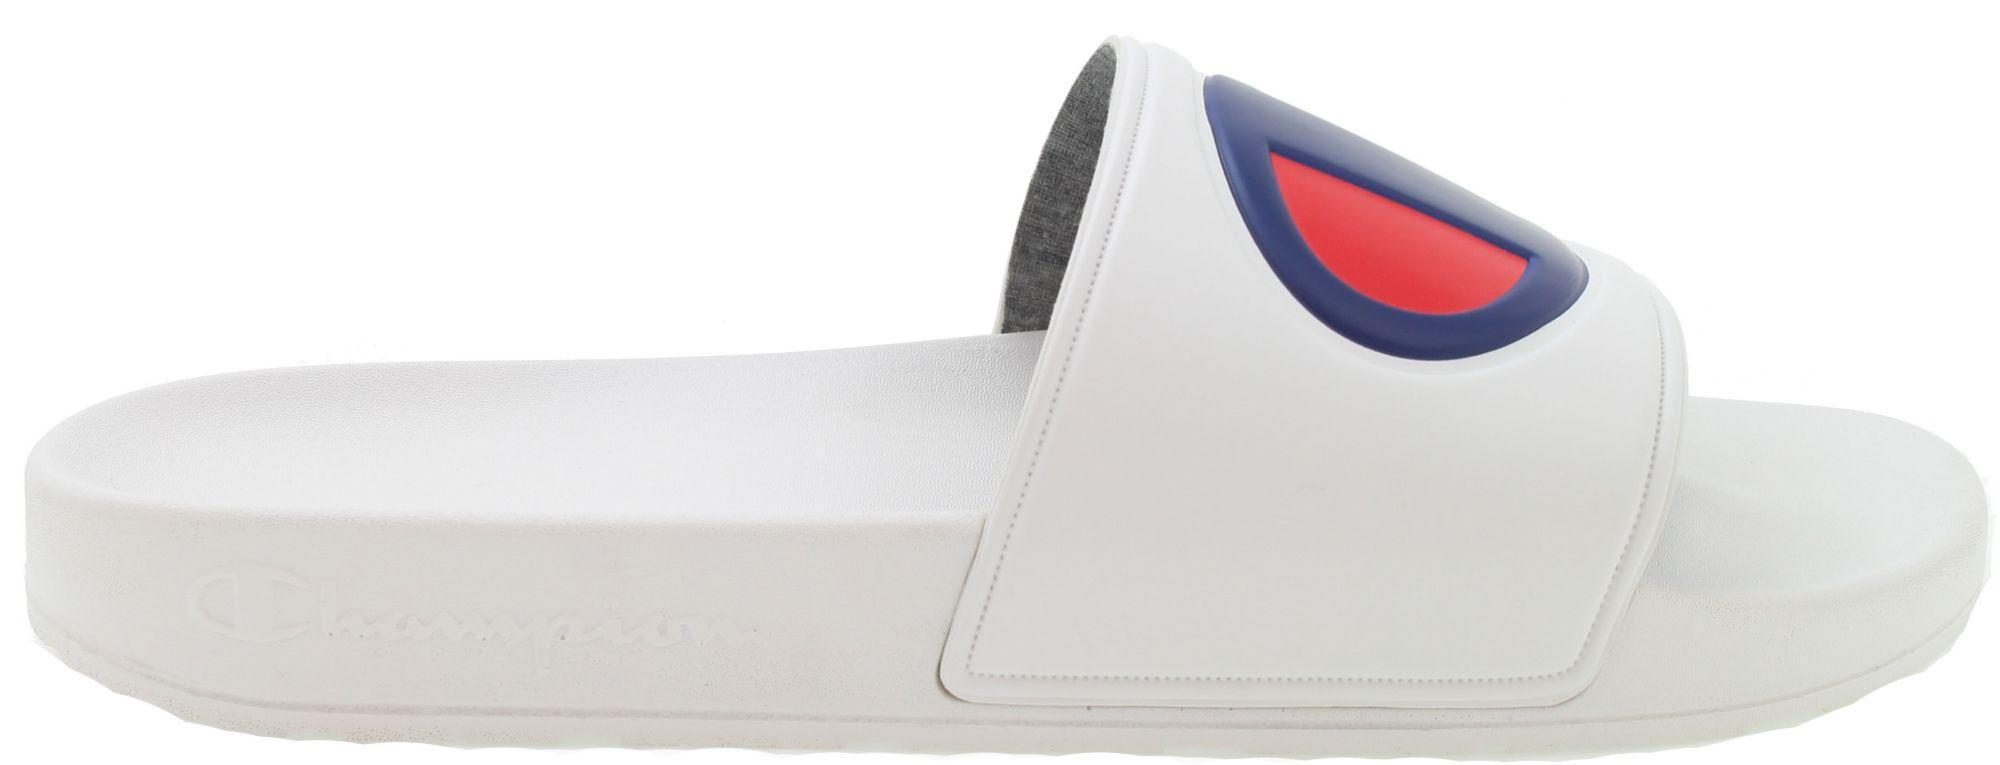 5dbf3a475bff Lyst - Champion Ipo Slides in White for Men